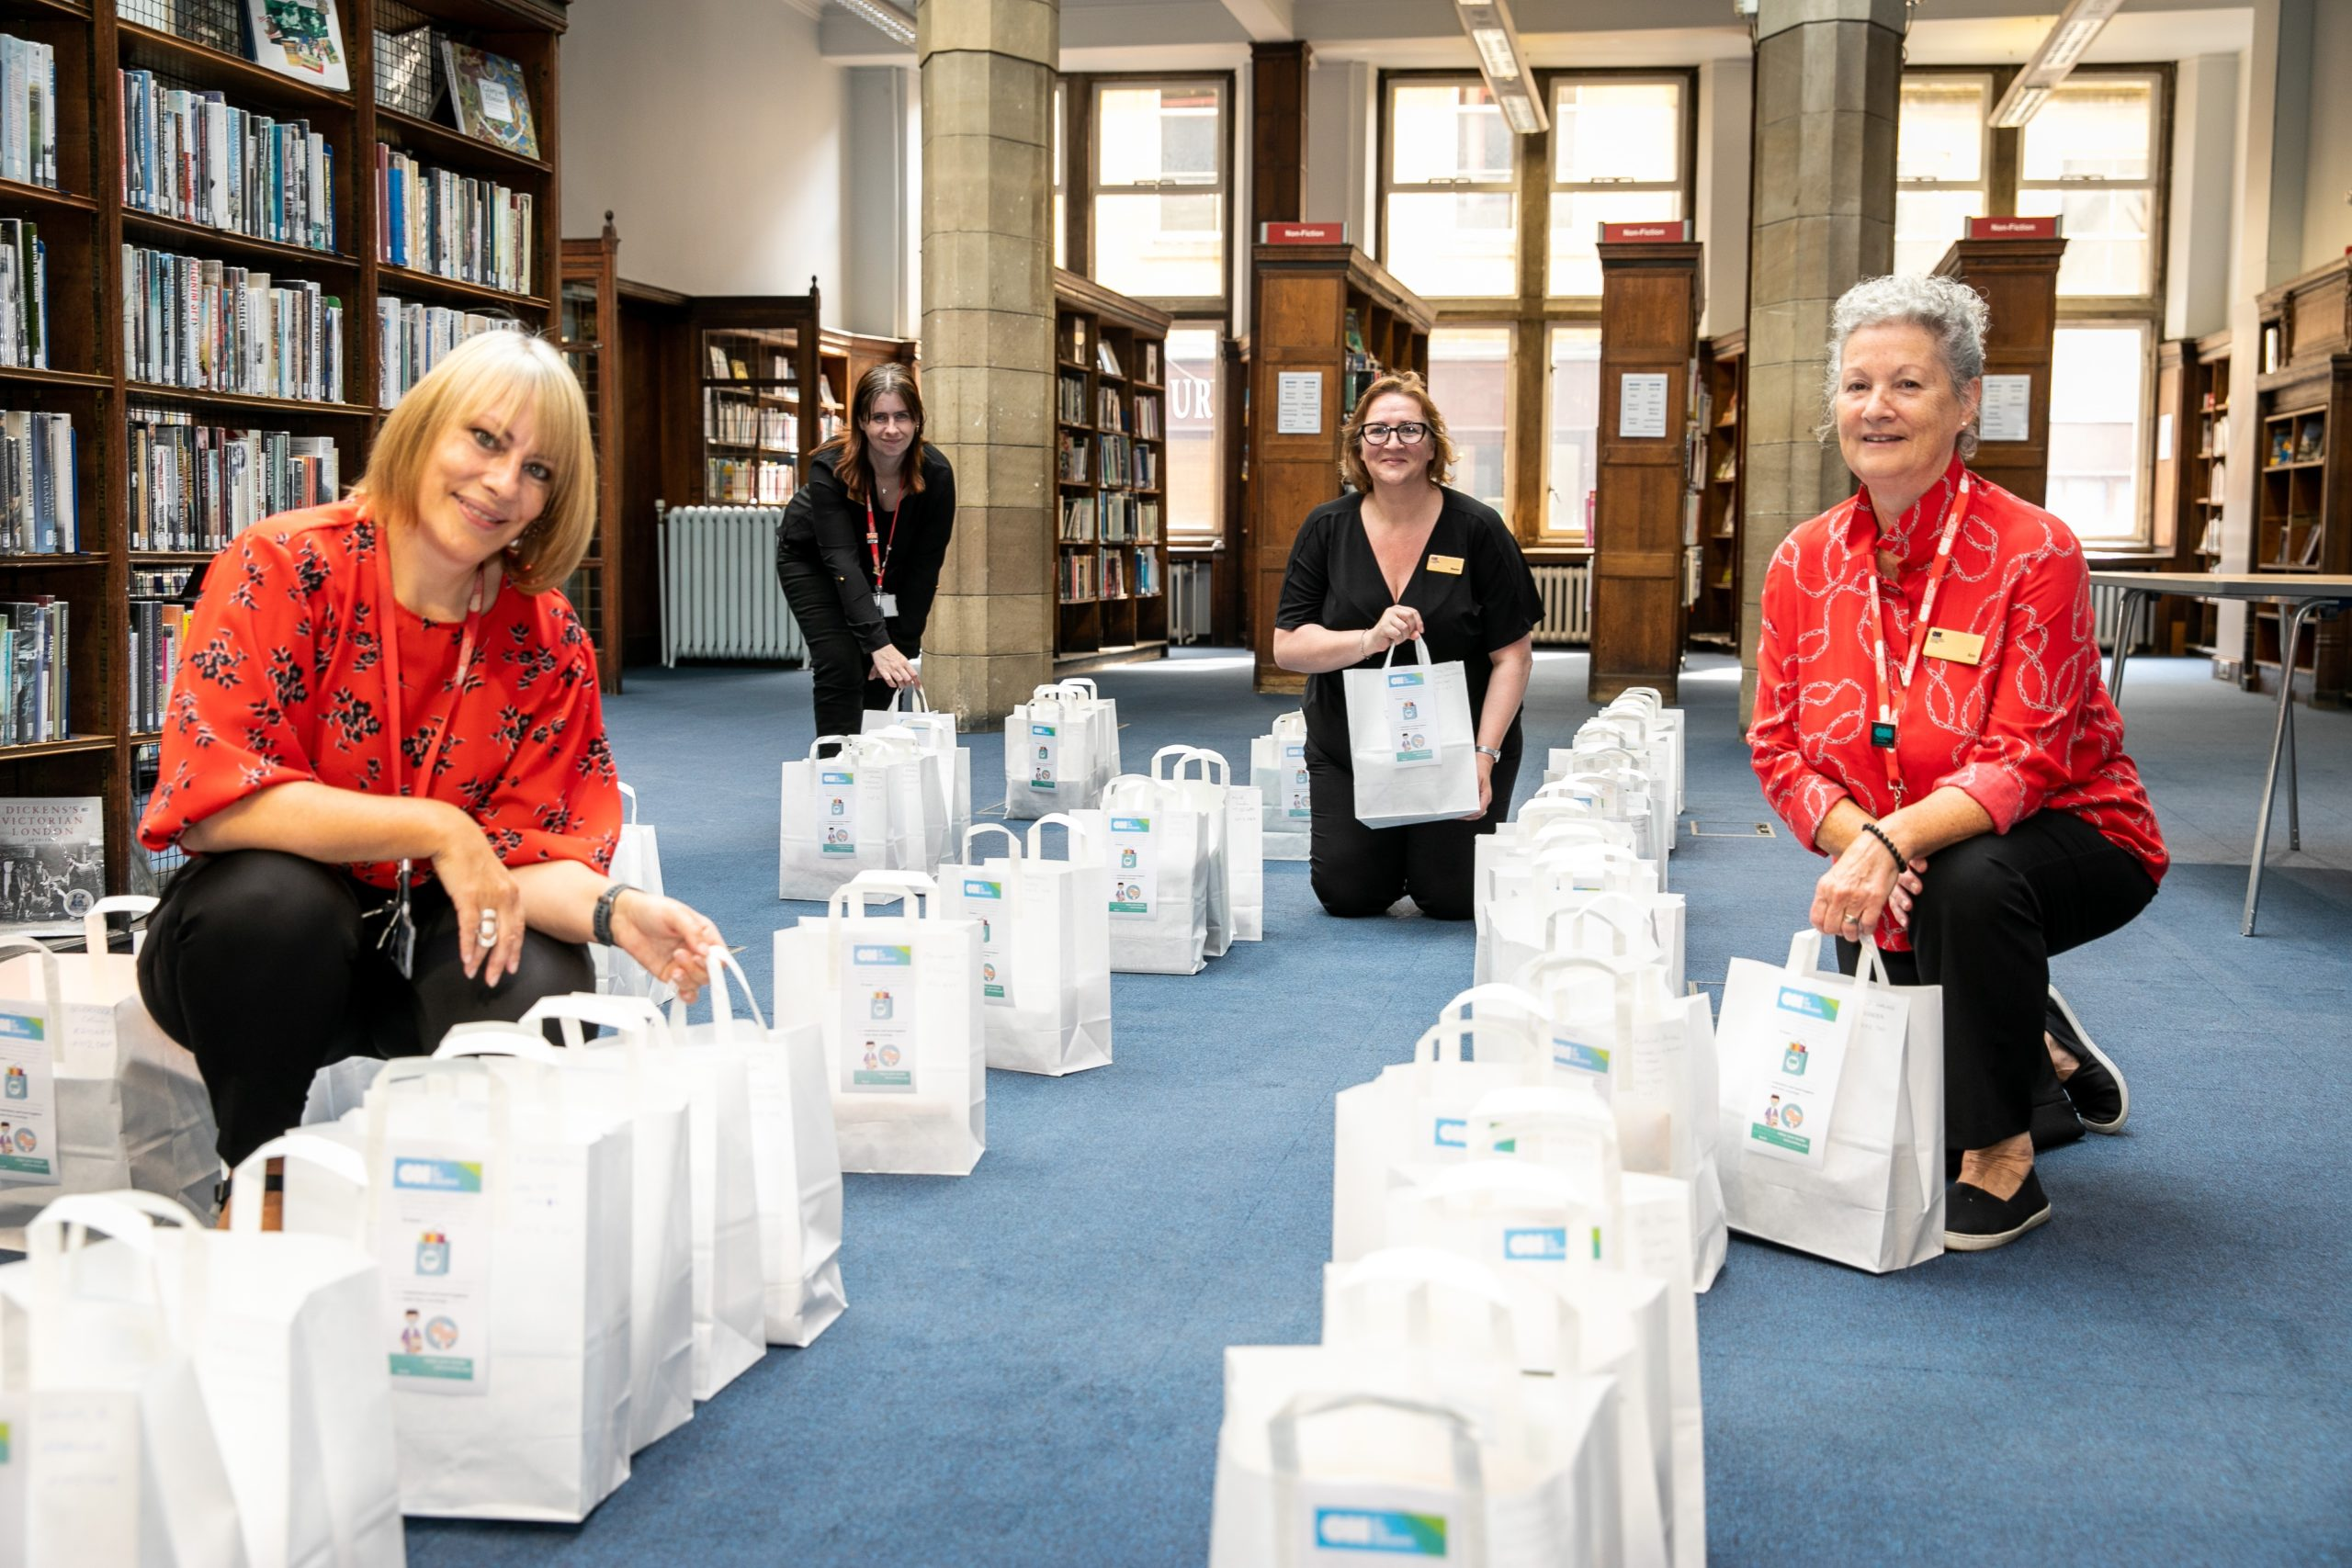 Jillian McFarlane, Sharon Brown, Donna Dewar and Ann McBurnie (Cultural Services Staff) with some of the bags for collection using the new Connect & Collect service at Dunfermline Carnegie Library and Galleries.